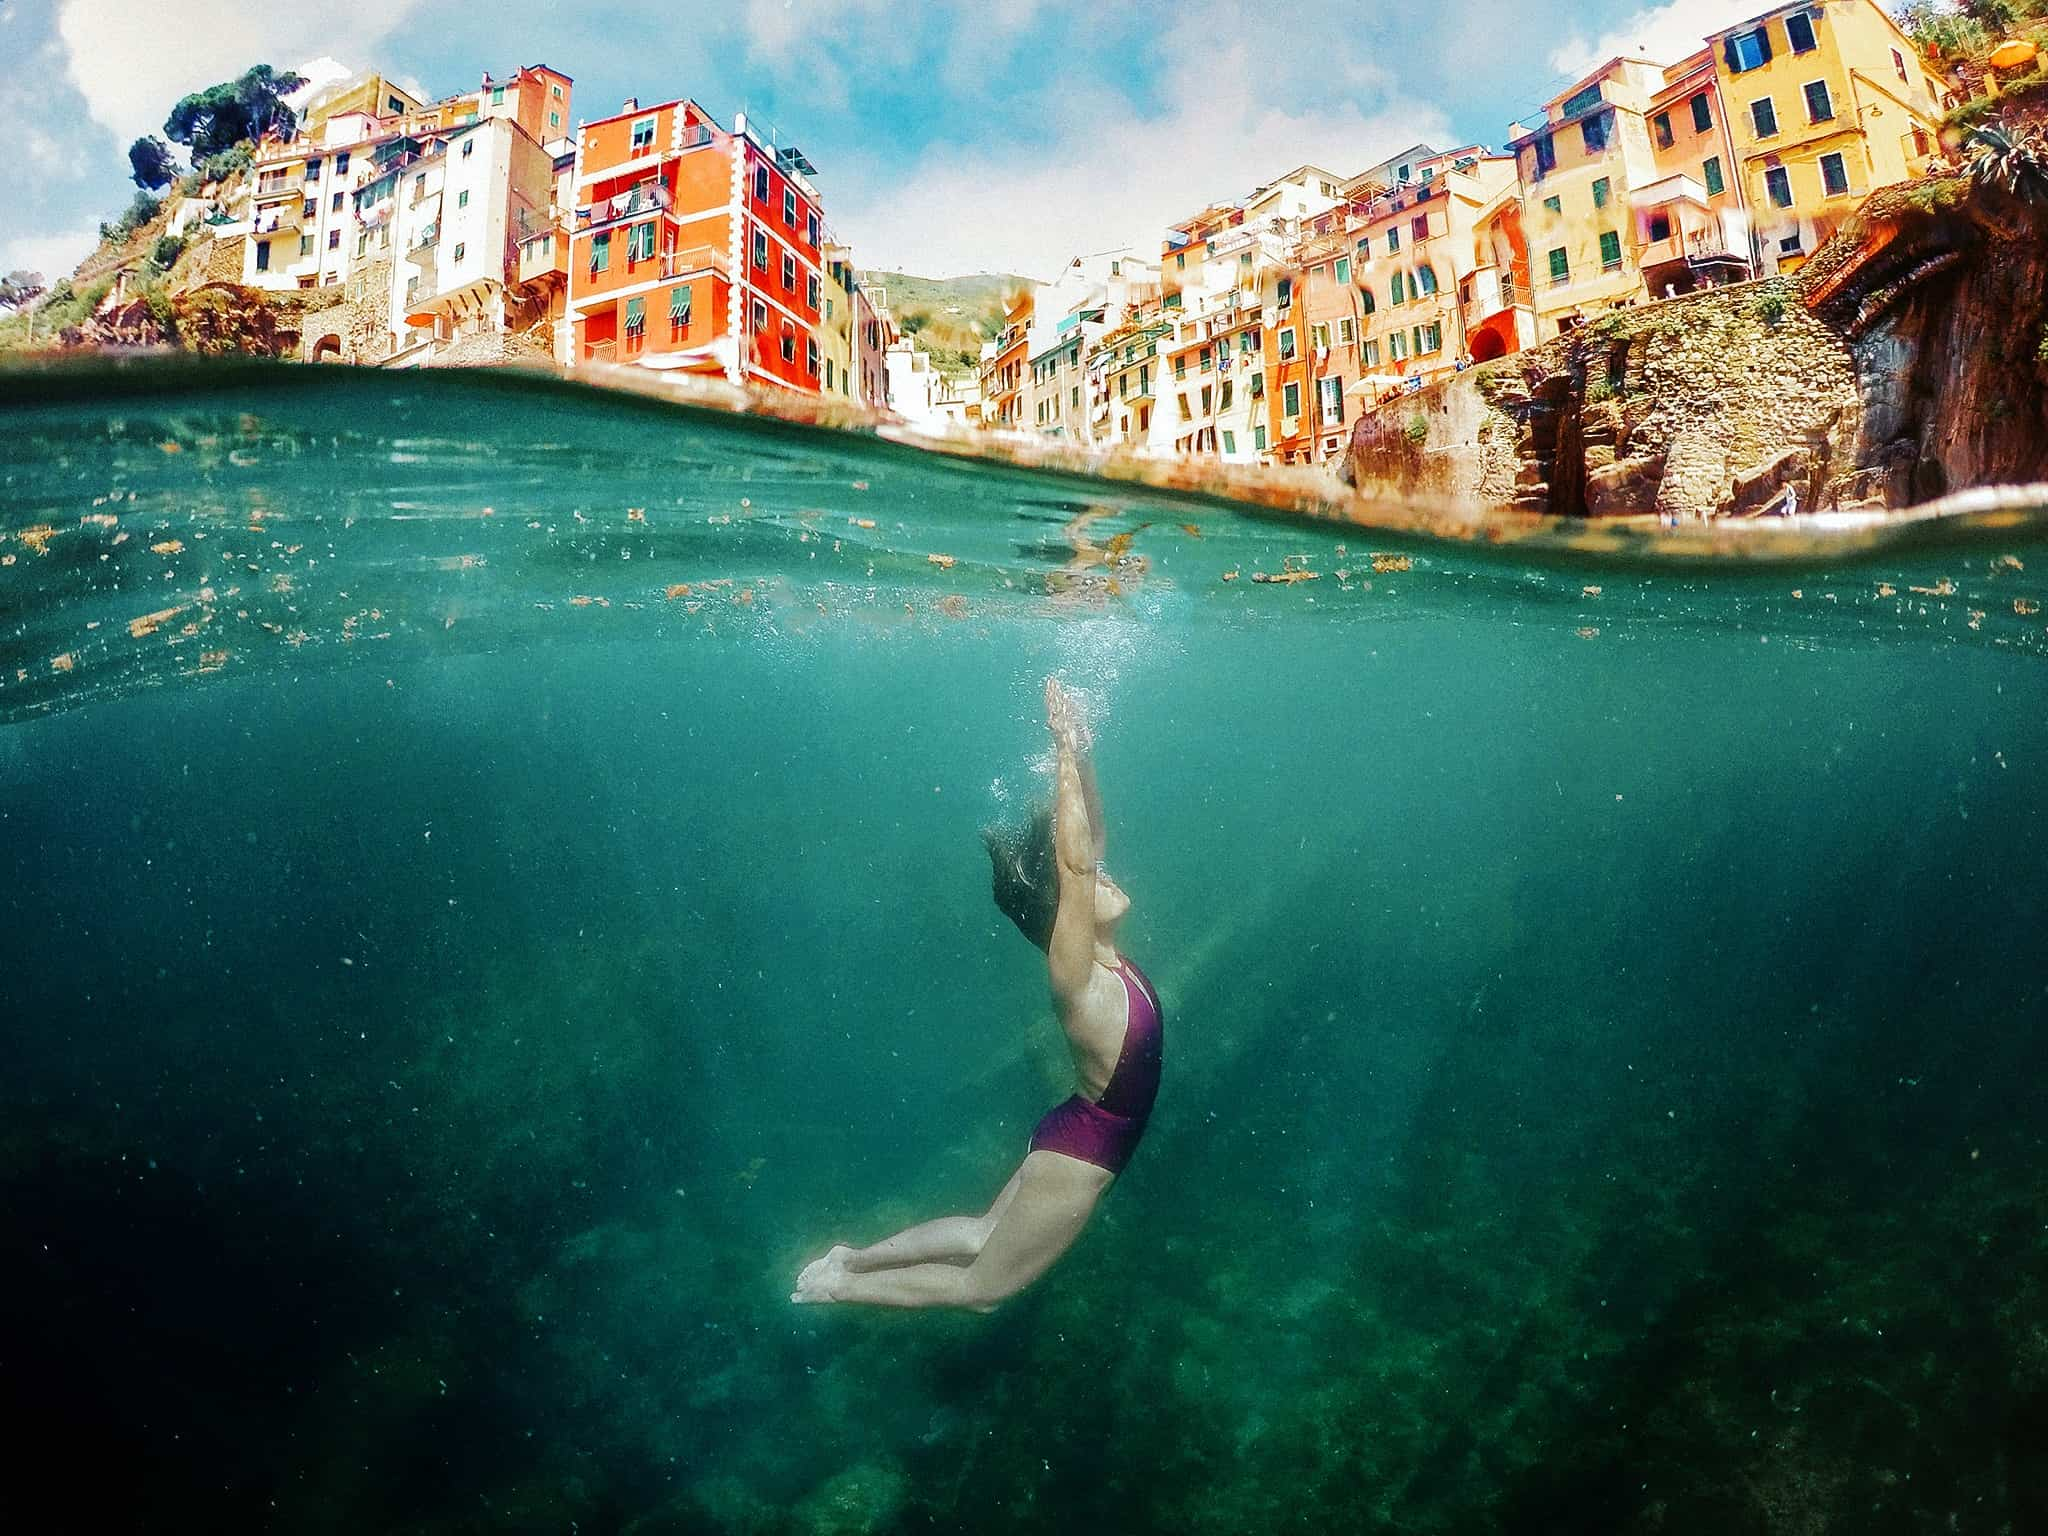 A woman swims underwater in front of buildings